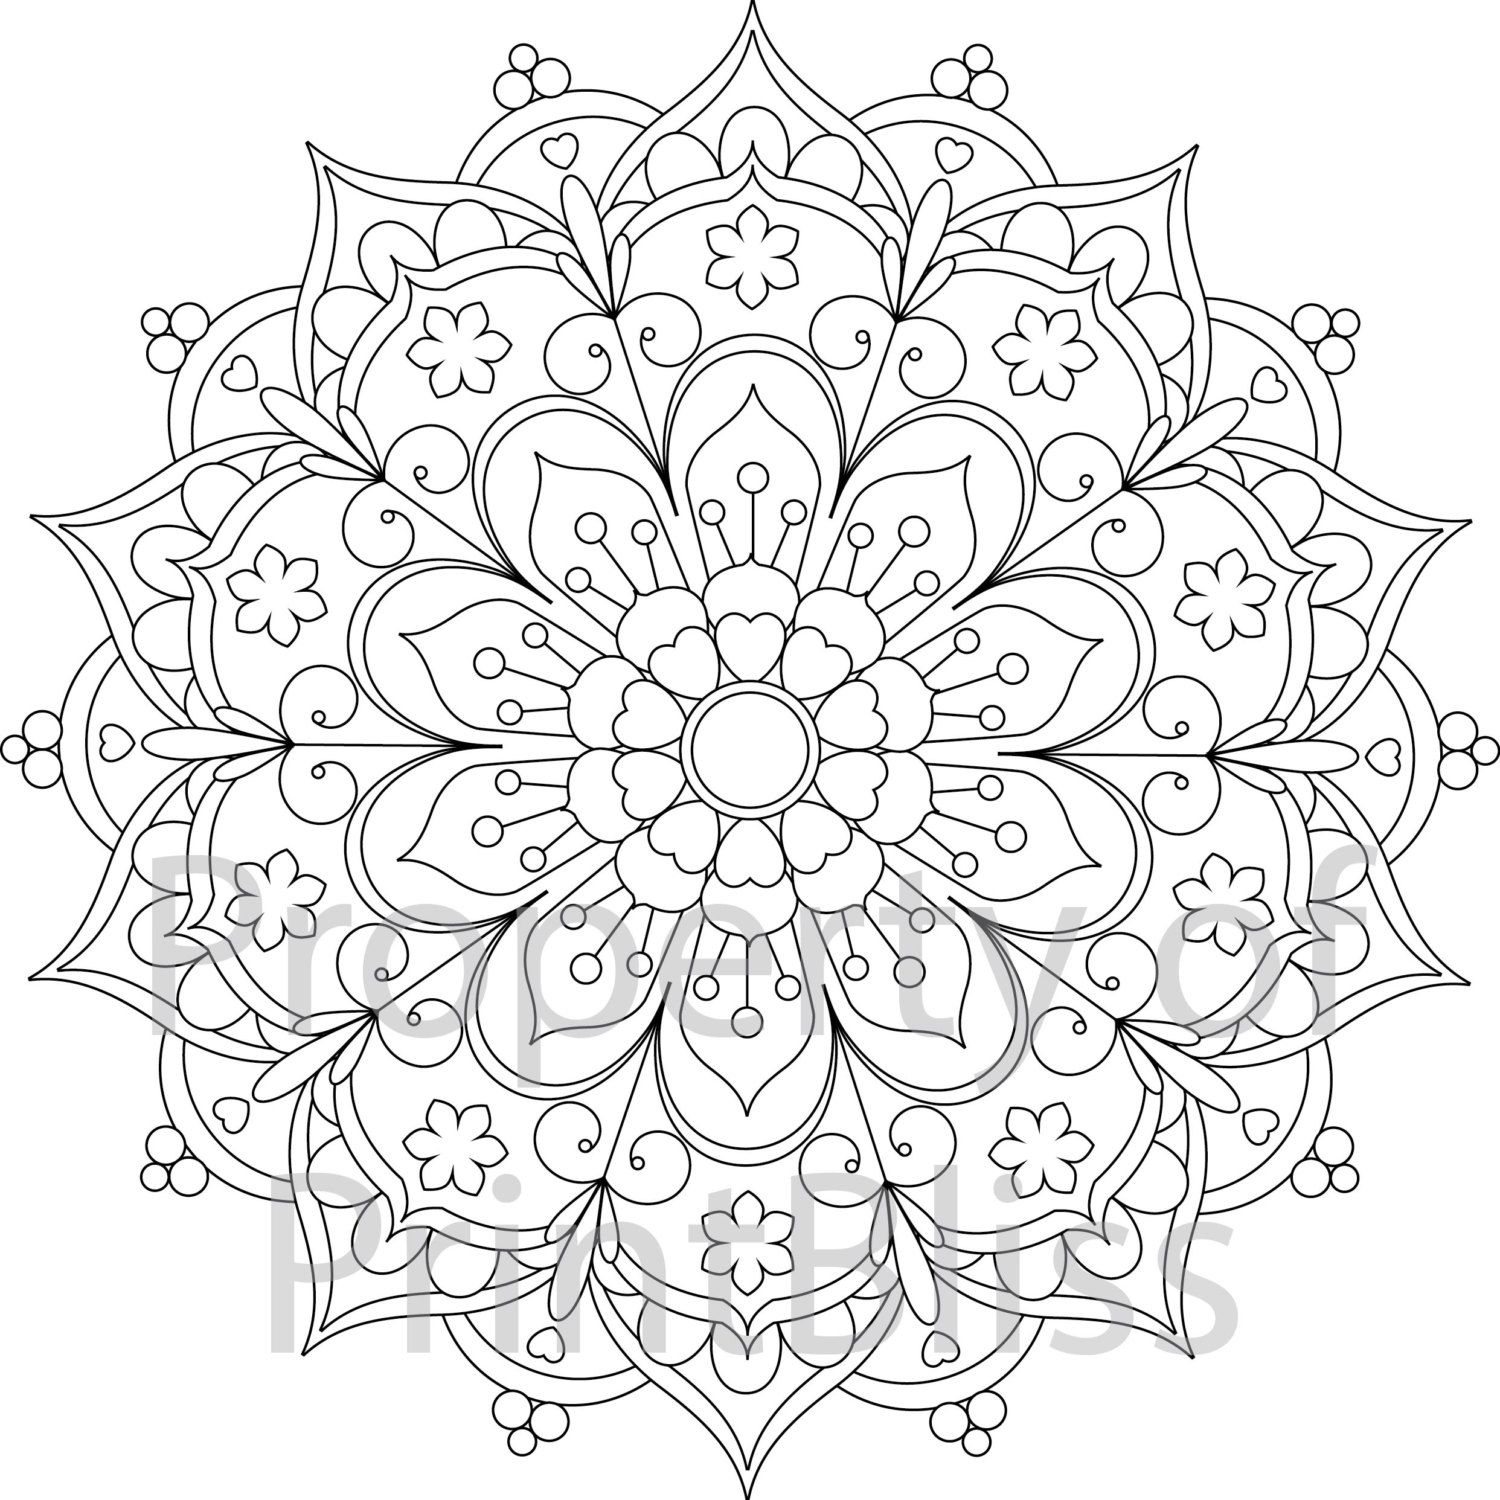 Mandala Colouring In Pages For Adults Collection